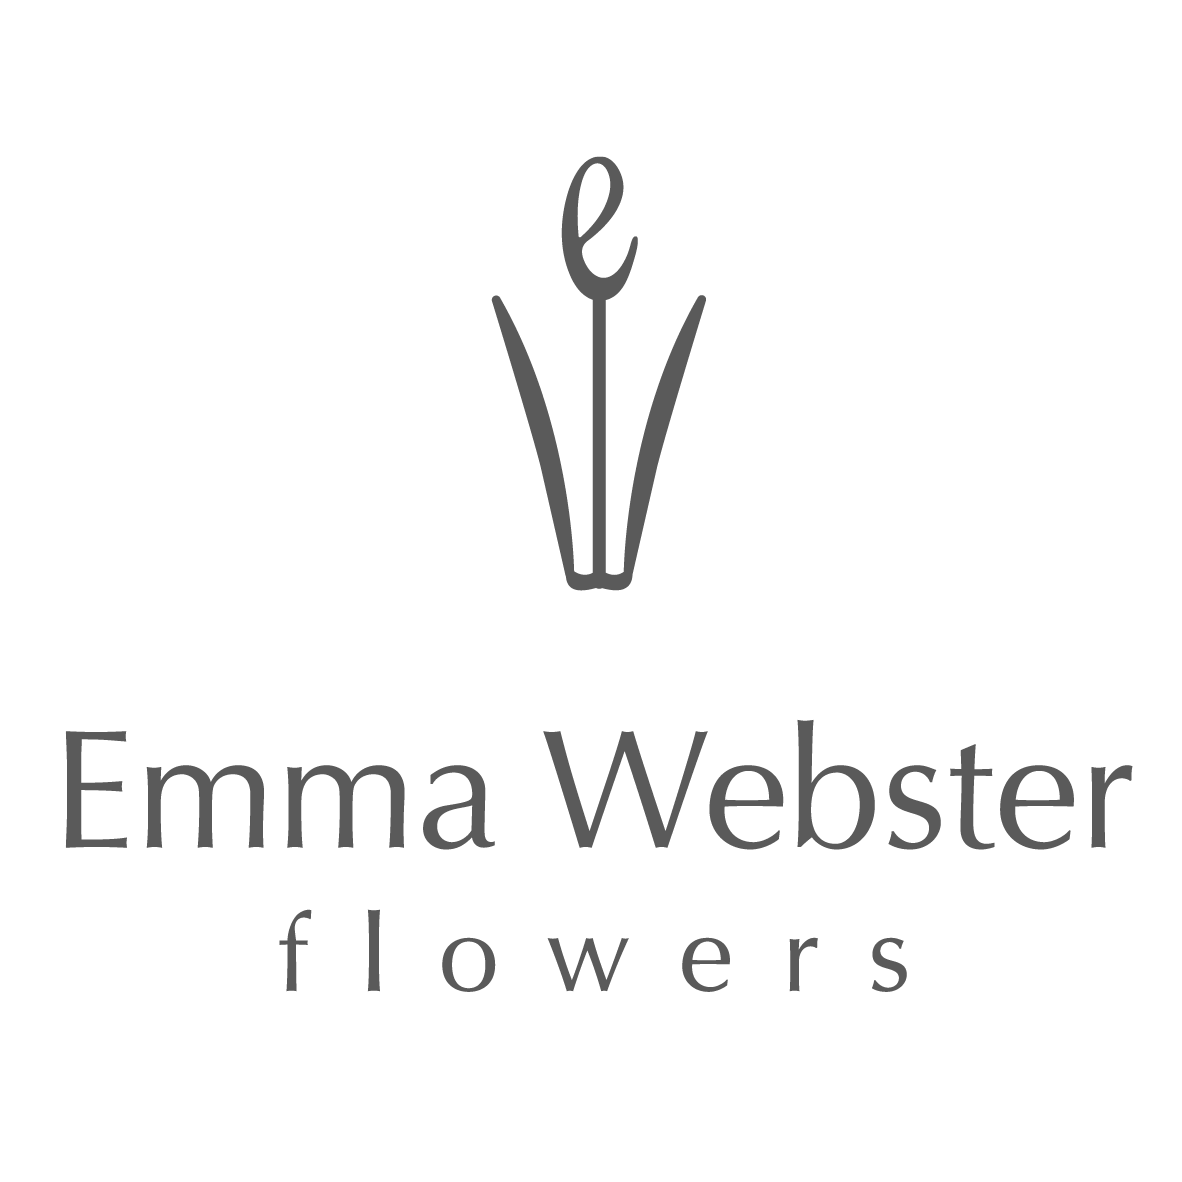 Emma Webster Flowers